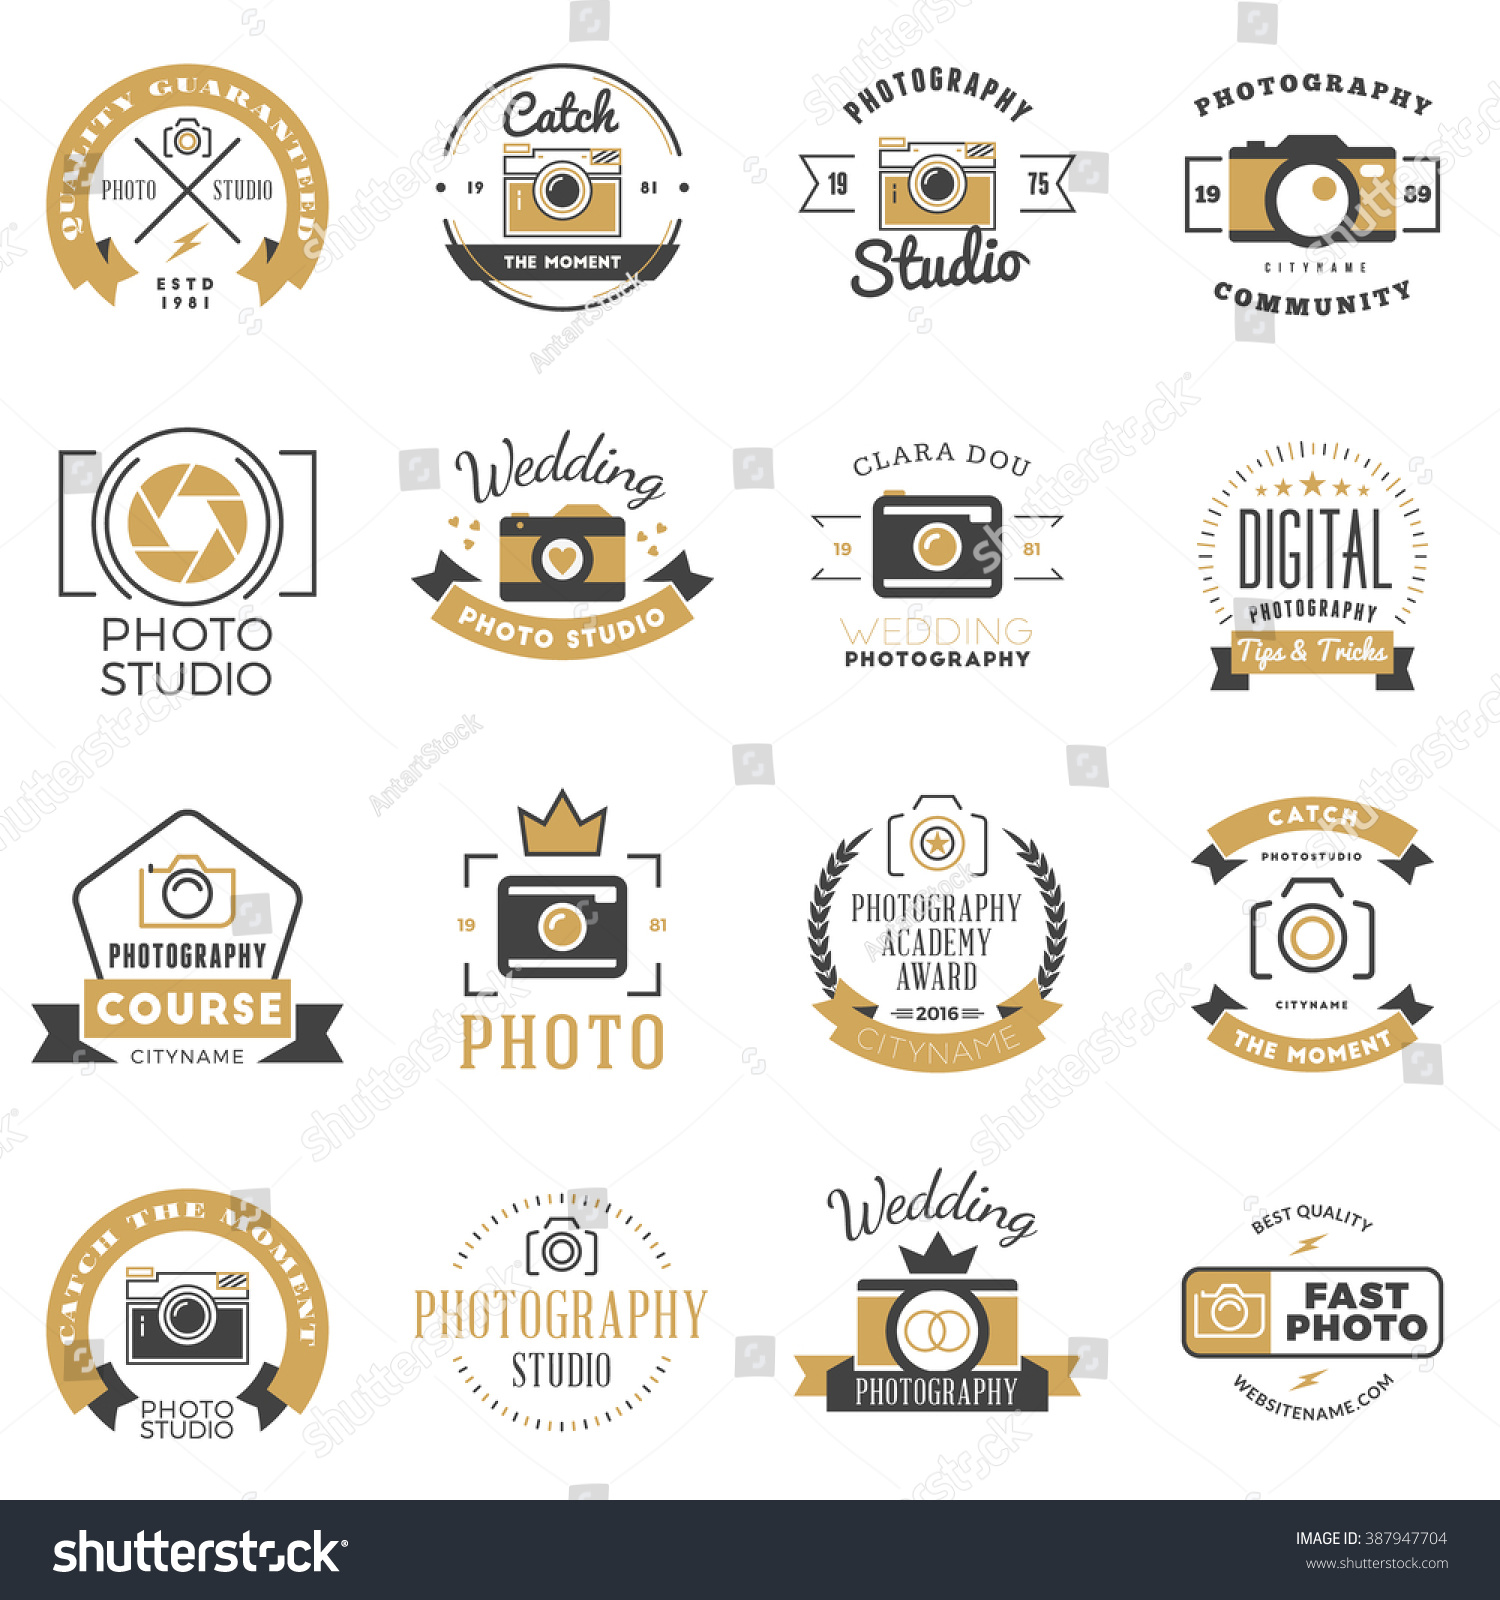 Wedding Photography Studio Logo: Set Photography Logo Design Templates Photography Stock